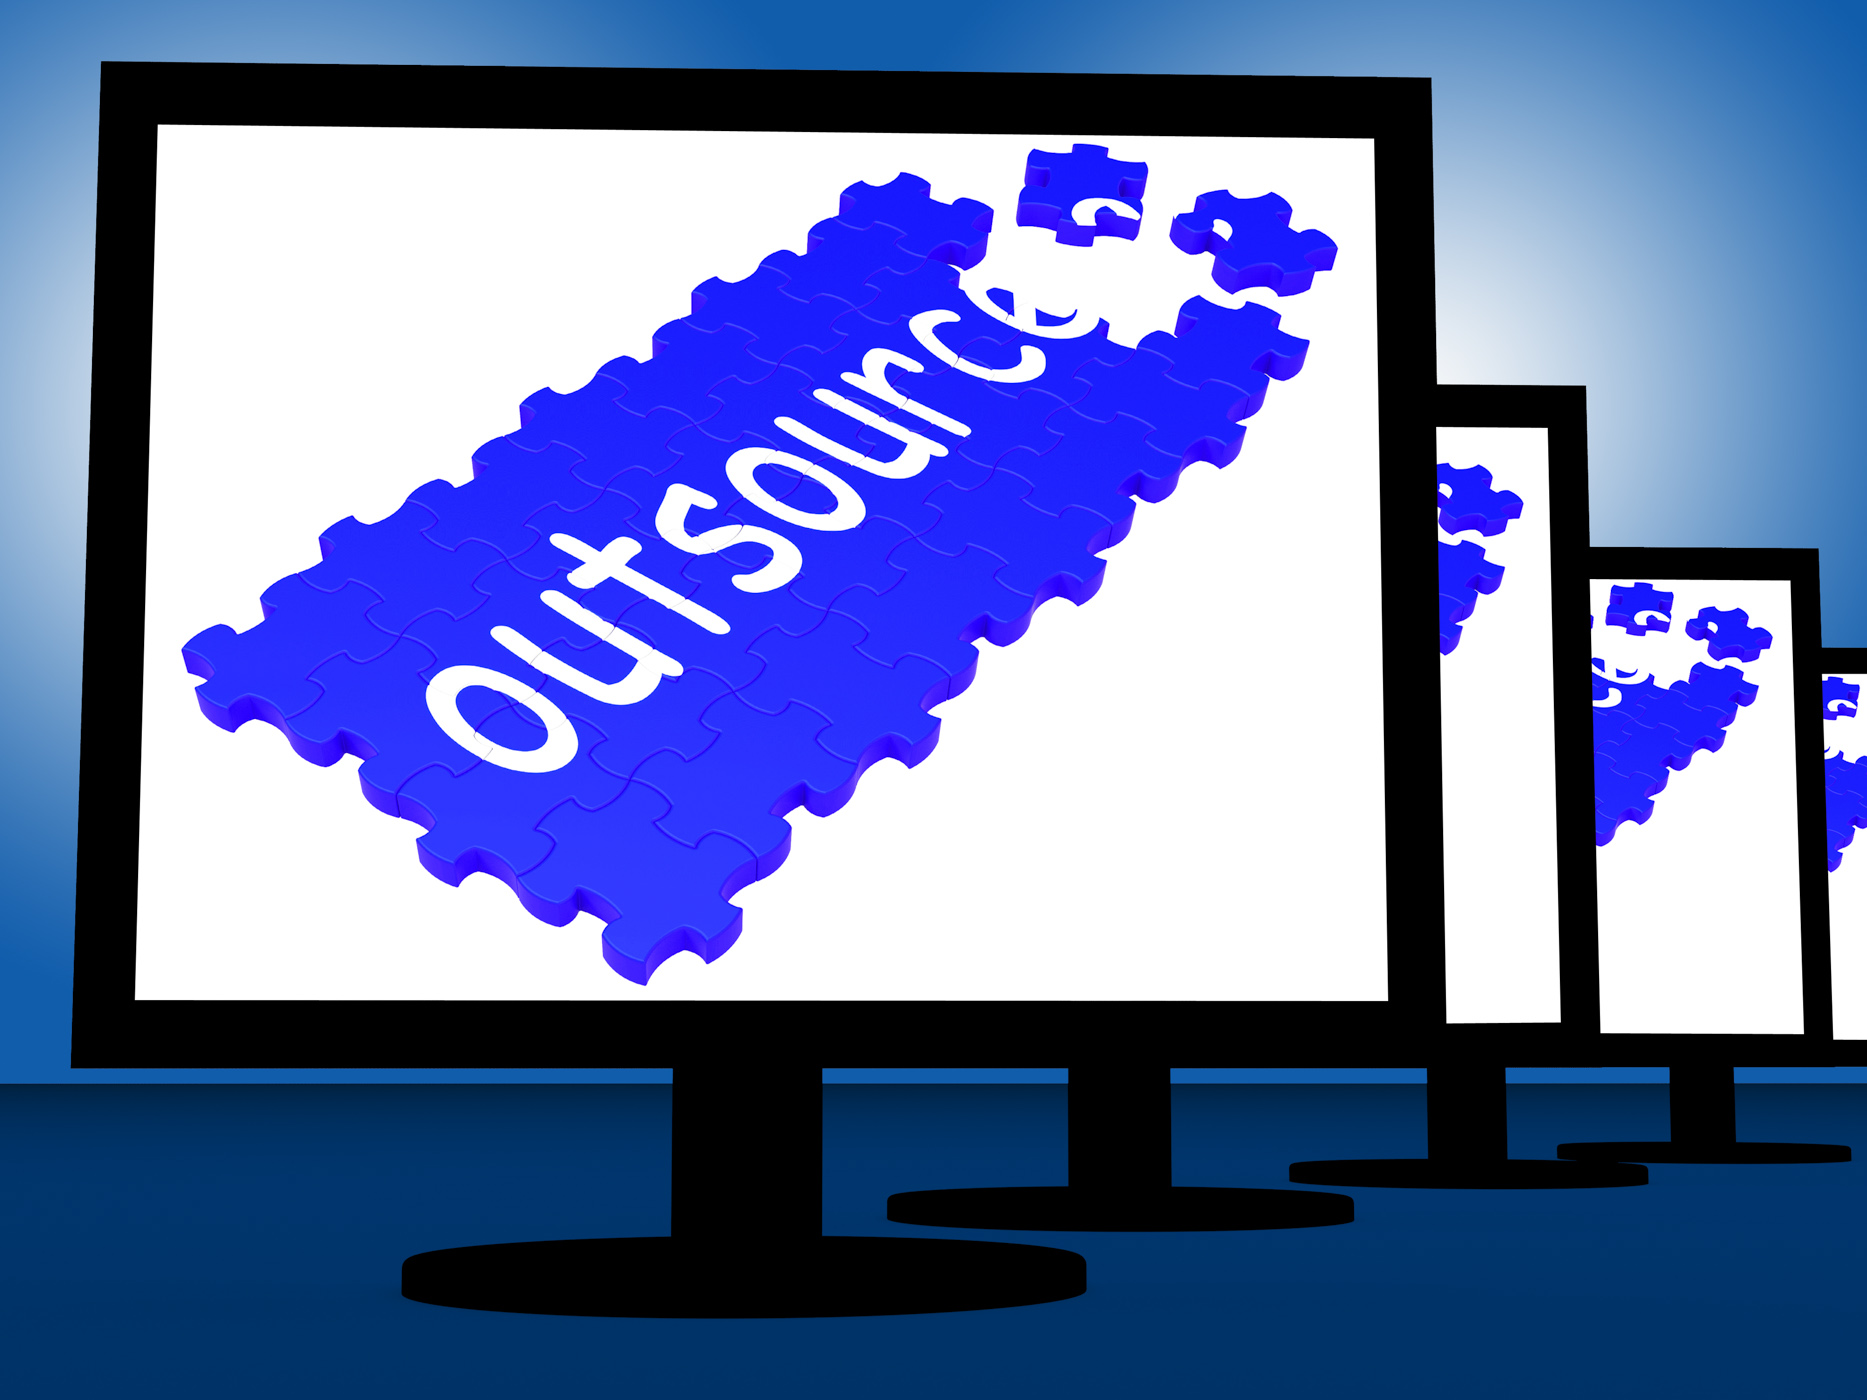 Outsource On Monitors Shows Subcontracts, Outsourced, TV, Subcontracting, Subcontract, HQ Photo